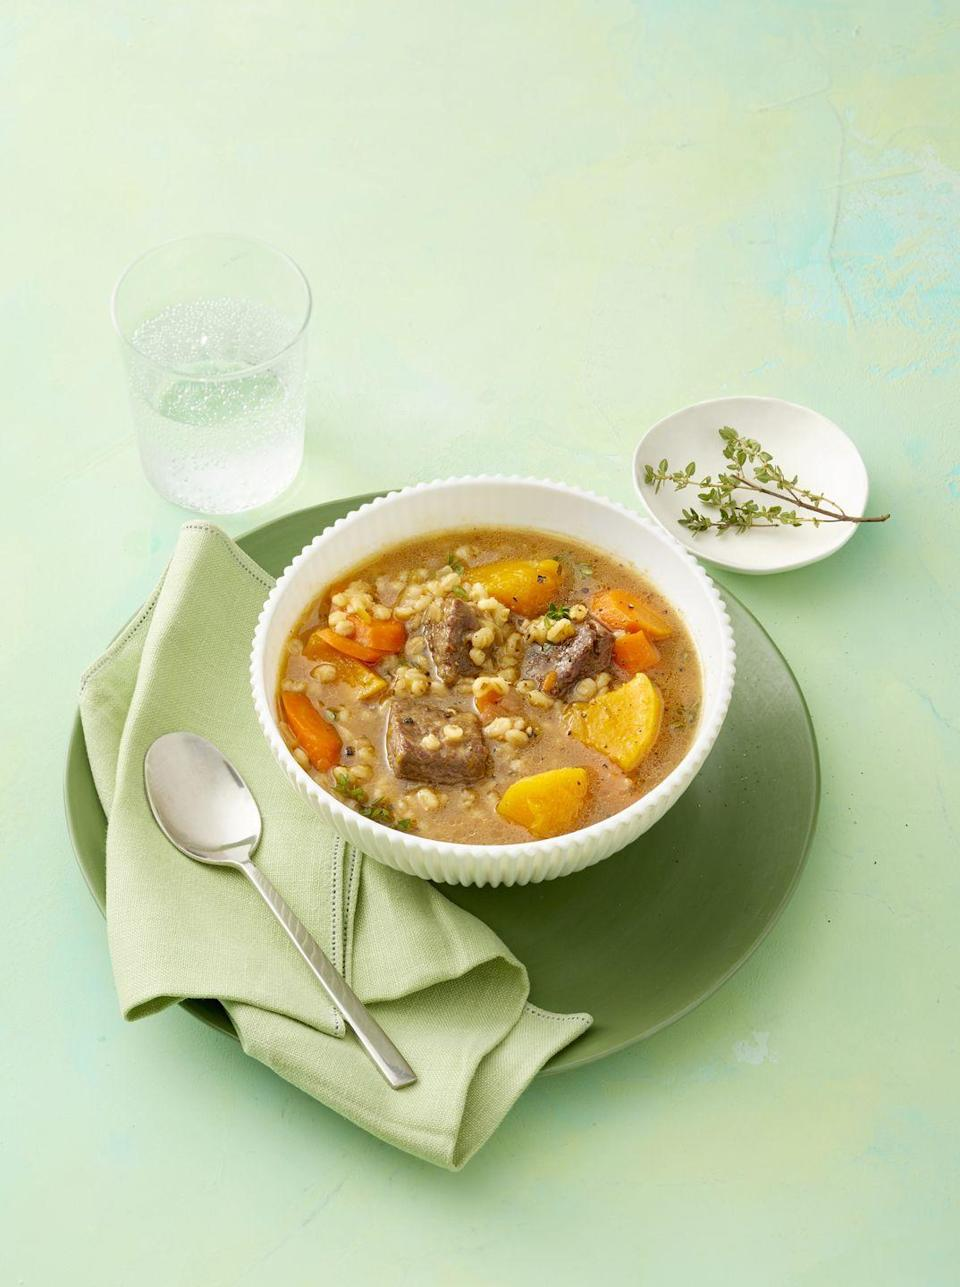 """<p>With help from your Instant Pot, this flavor-packed stew will taste like it's been simmering all day.</p><p><em><a href=""""https://www.womansday.com/food-recipes/food-drinks/a25837767/instant-pot-beef-and-squash-stew-recipe/"""" rel=""""nofollow noopener"""" target=""""_blank"""" data-ylk=""""slk:Get the recipe from Woman's Day »"""" class=""""link rapid-noclick-resp"""">Get the recipe from Woman's Day »</a></em></p>"""